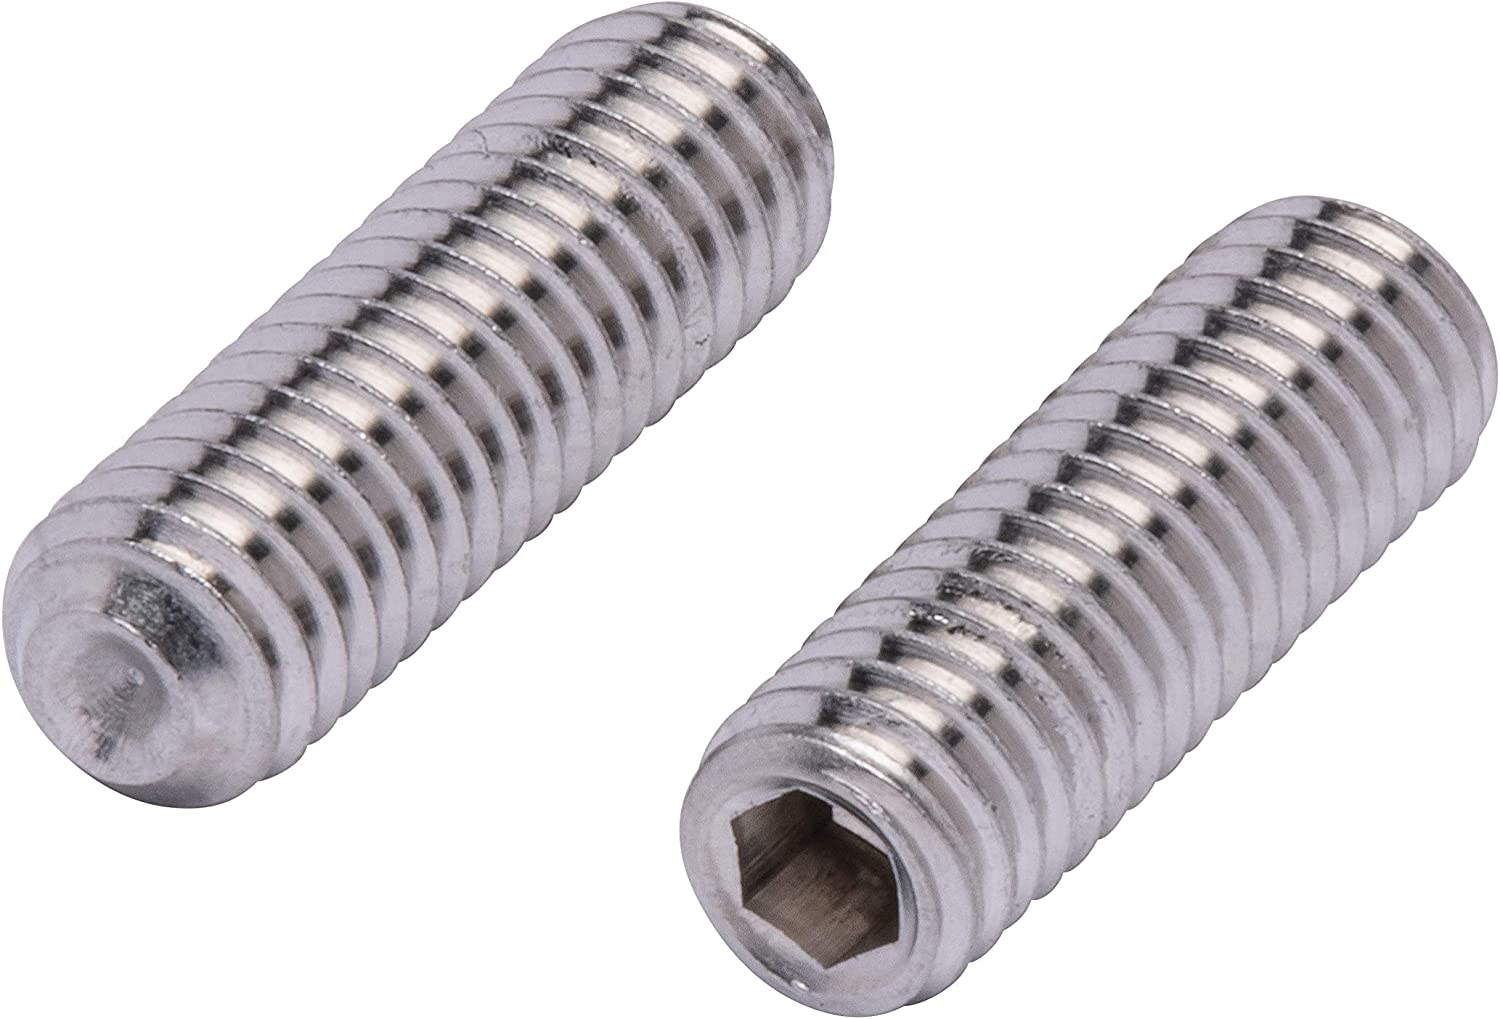 Cup Point Hex Socket Set Screws Full Thread 18-8 40 pcs AISI 304 Stainless Steel 3//8-16 X 1//2